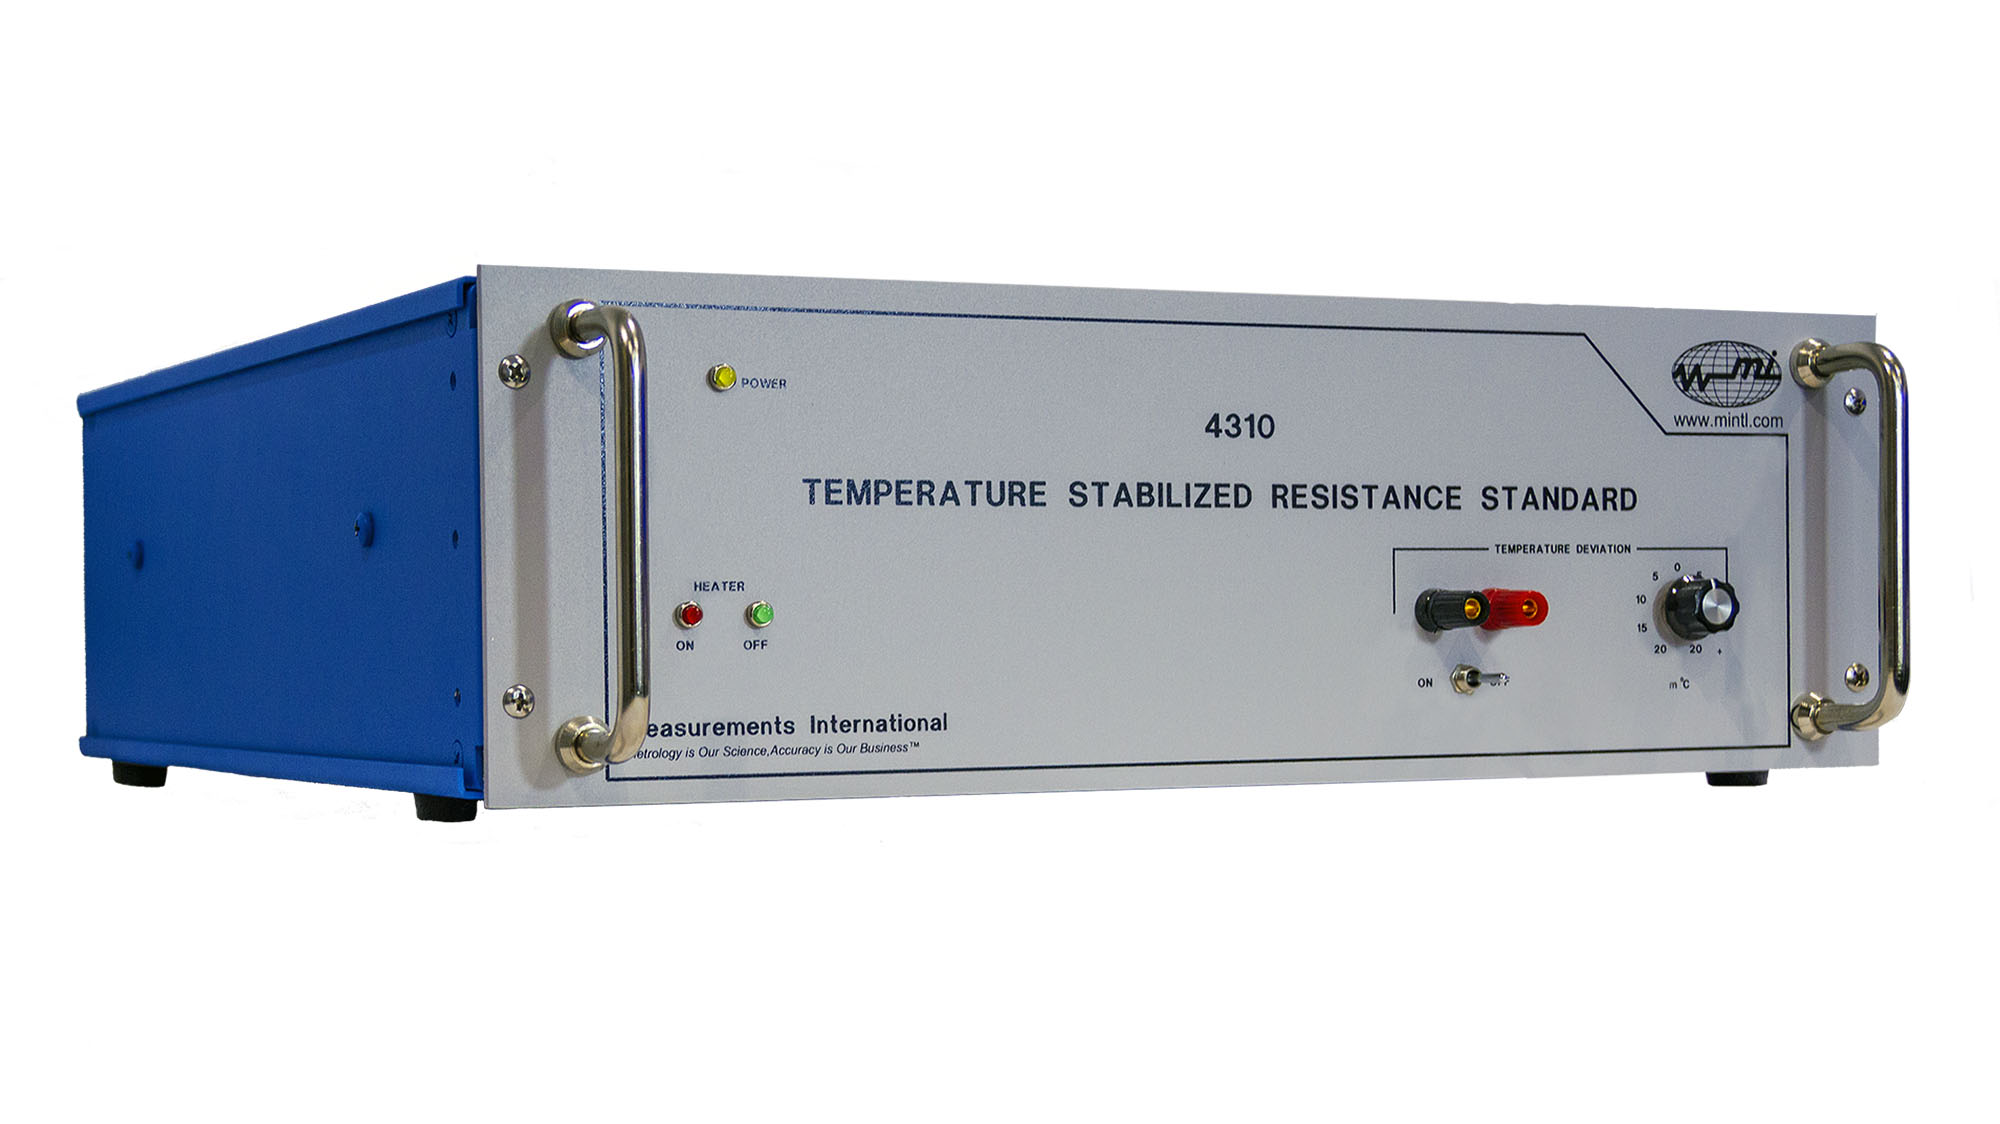 4310 Temperature Stabilized Resistance Standard